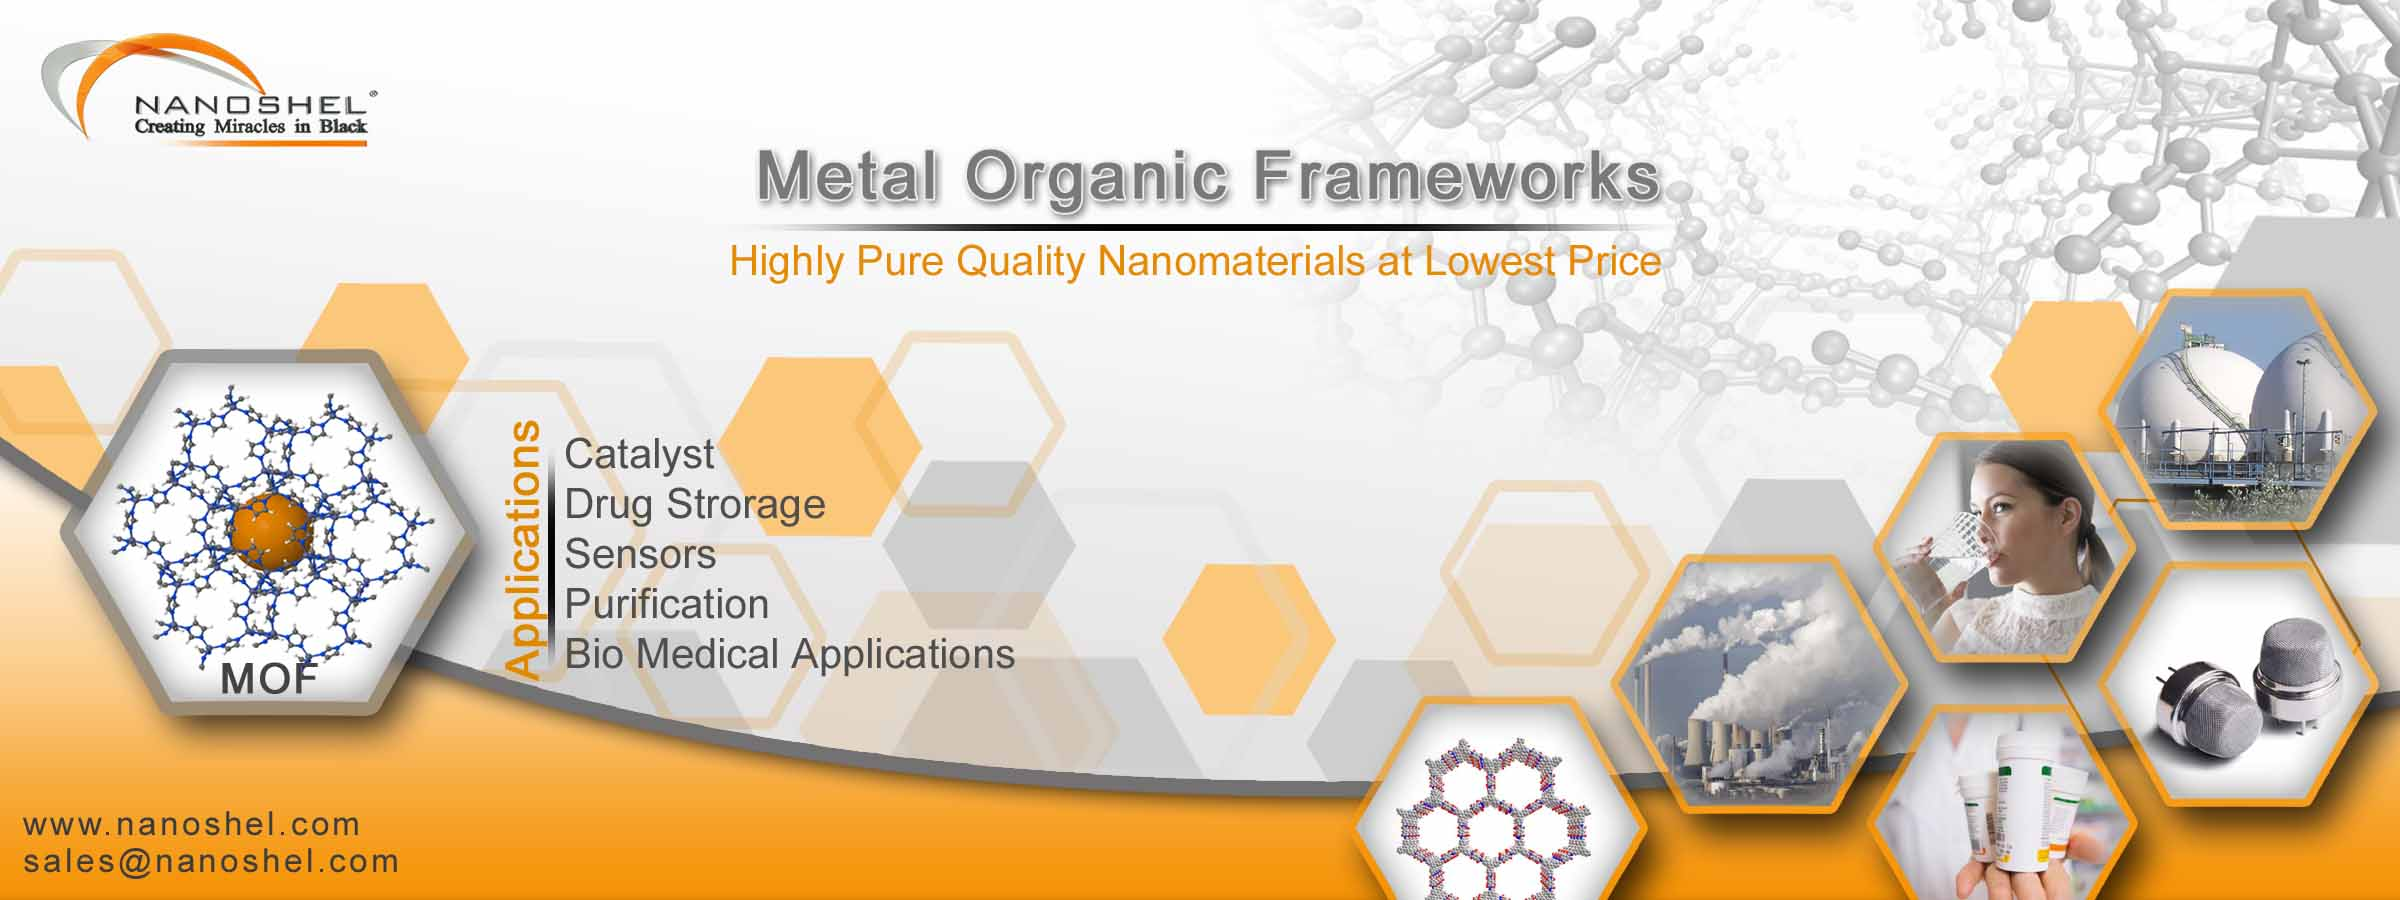 Vanadium Metal Organic Frameworks